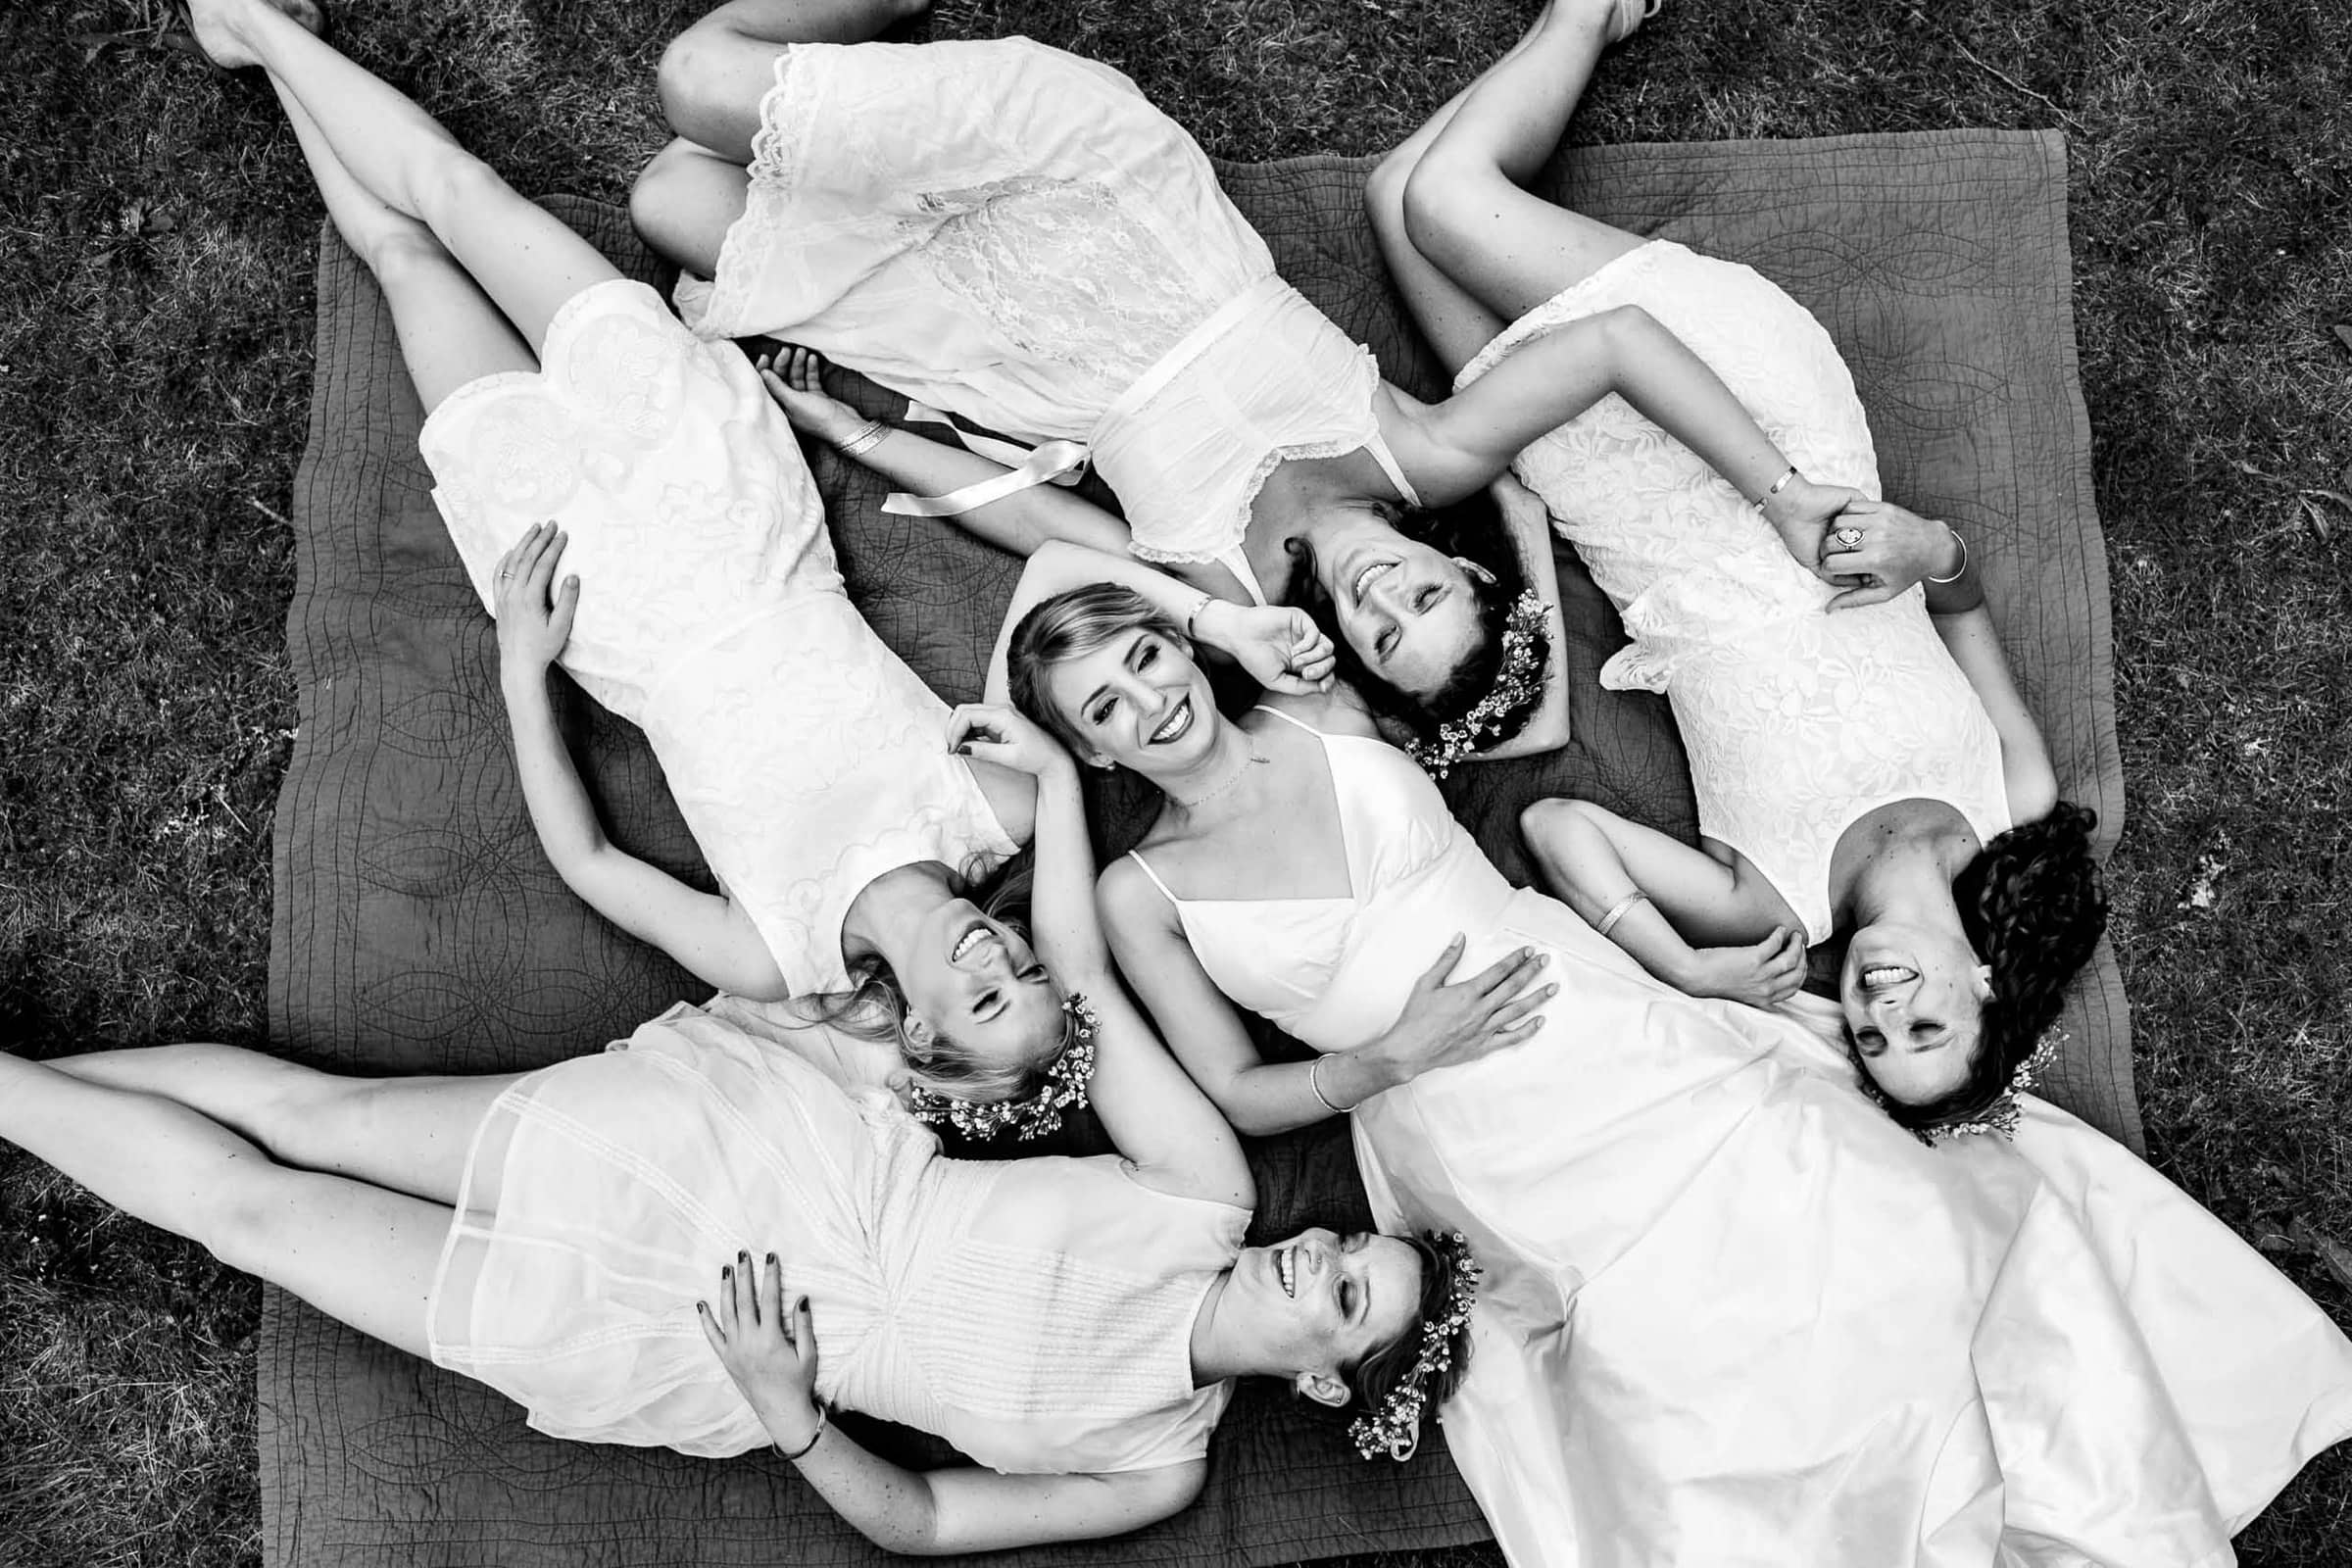 A drone photo of a bride with her best friends all laying together before heading out to their camp angleos wedding